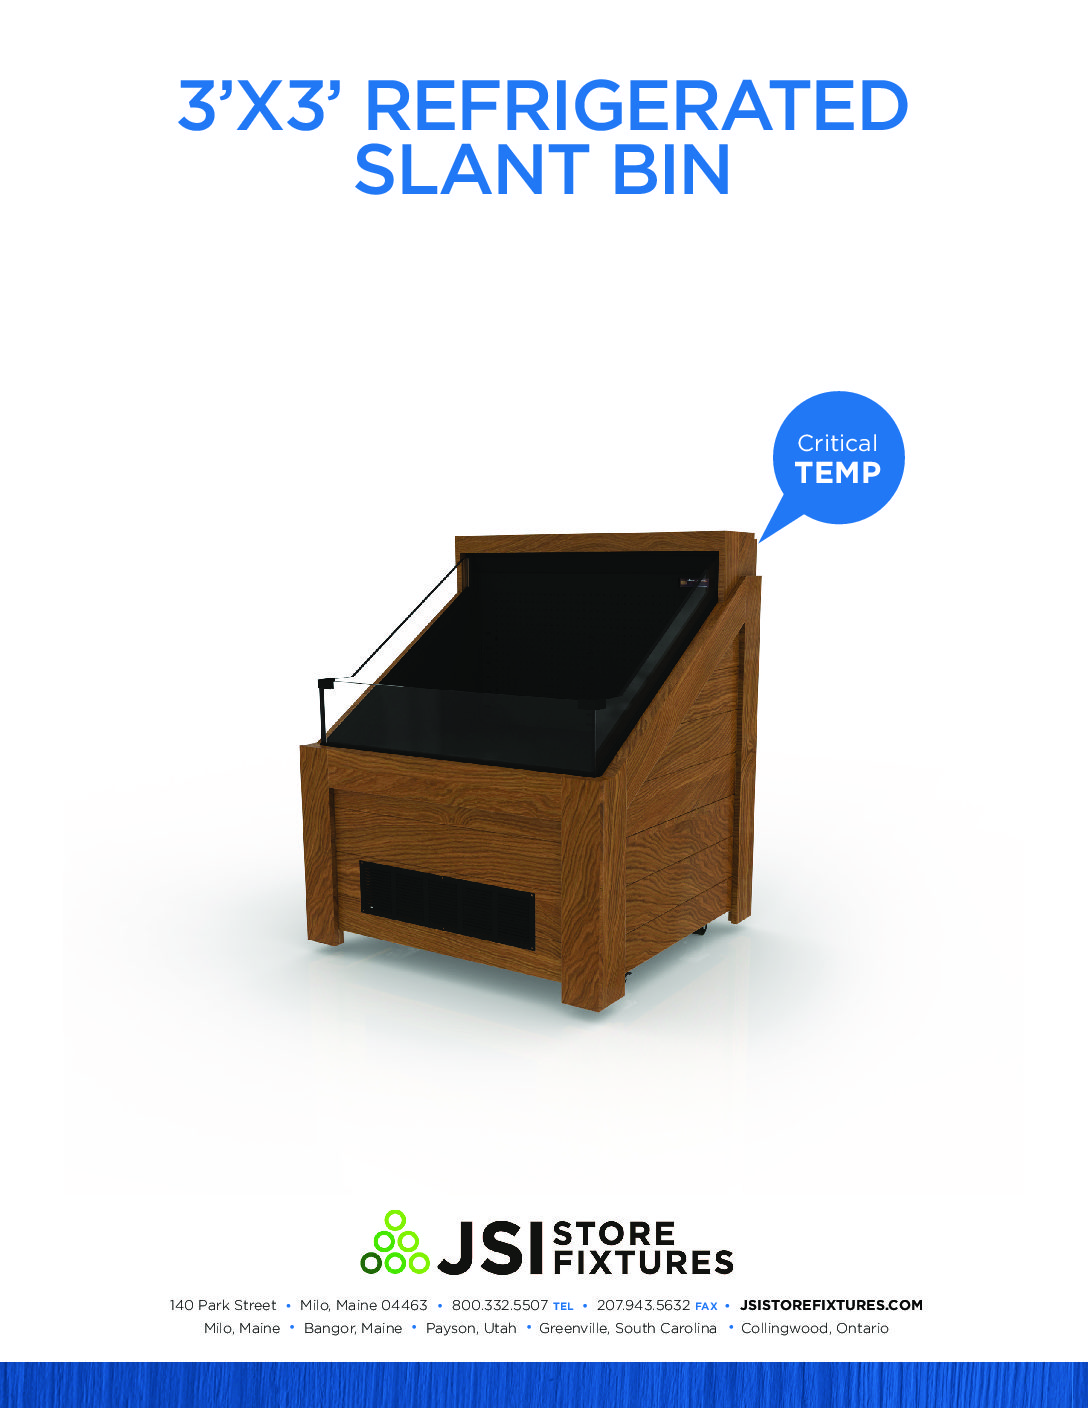 3'x3' Refrigerated Slant Bin Spec Sheet